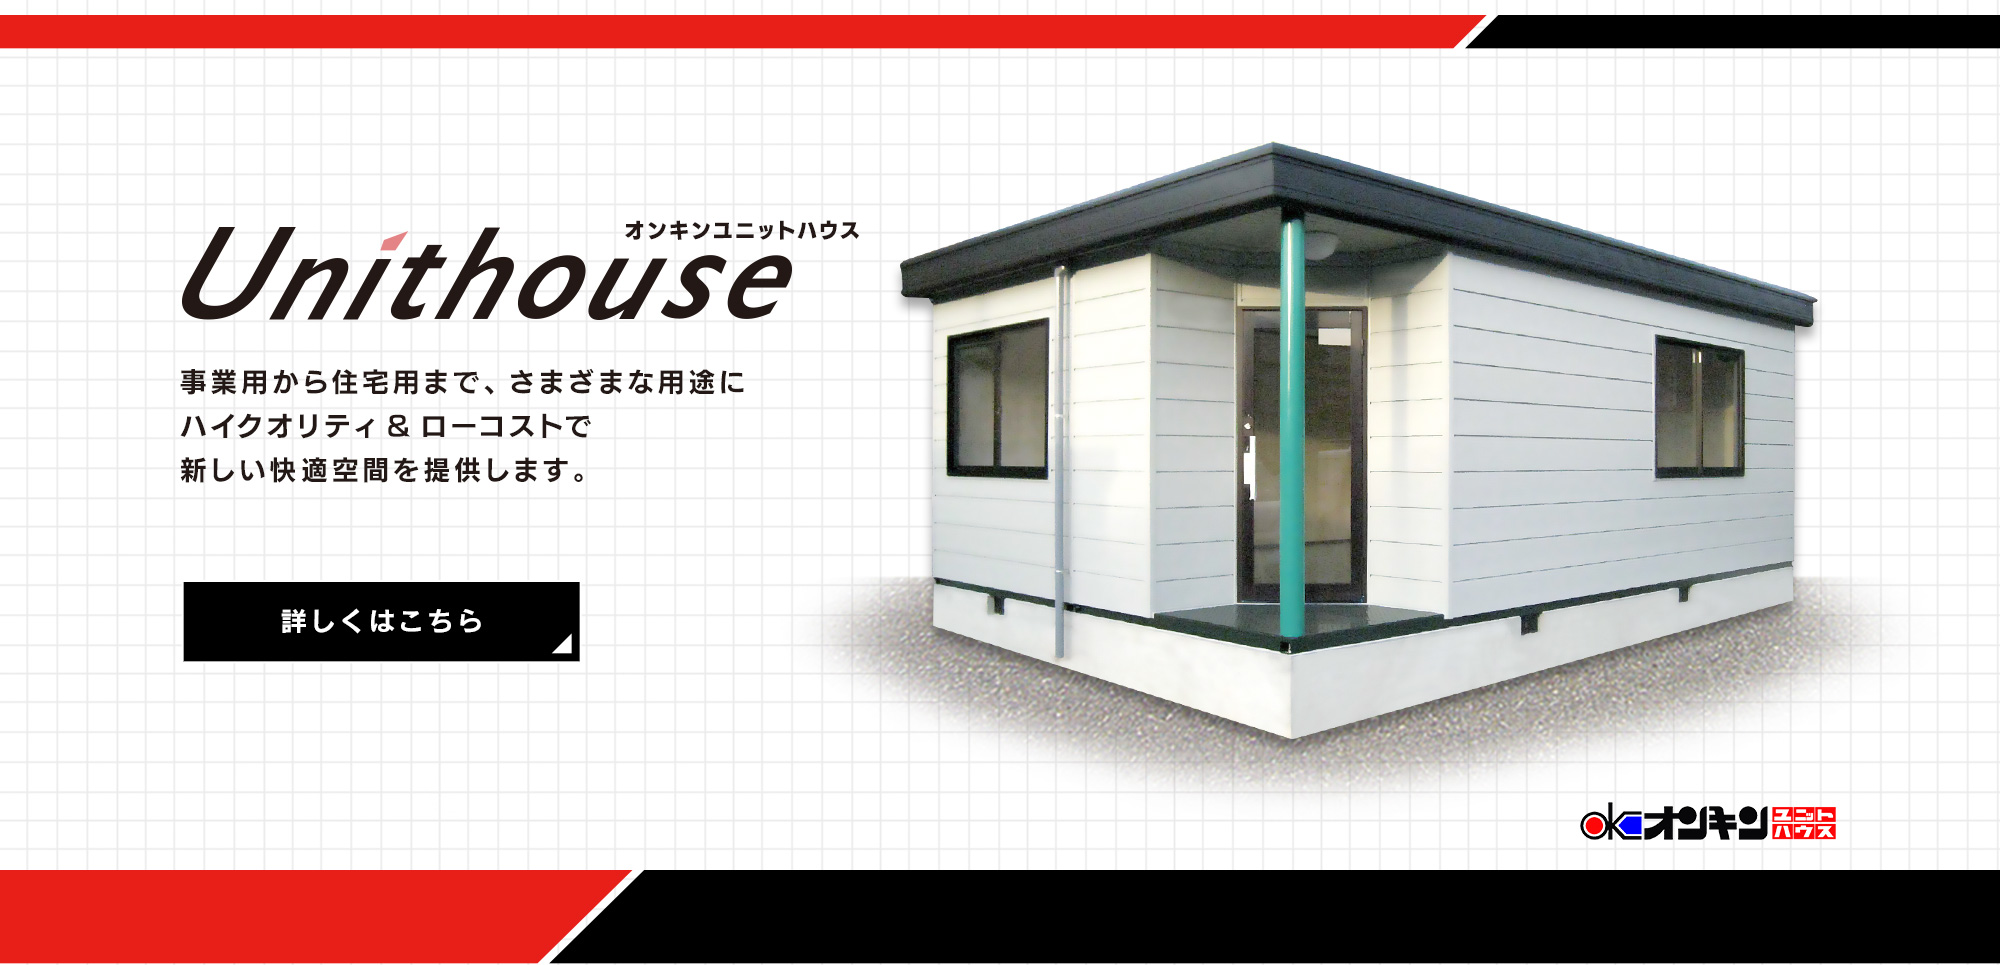 Unithouse ユニット建築 Preafabricated construction プレハブ建築